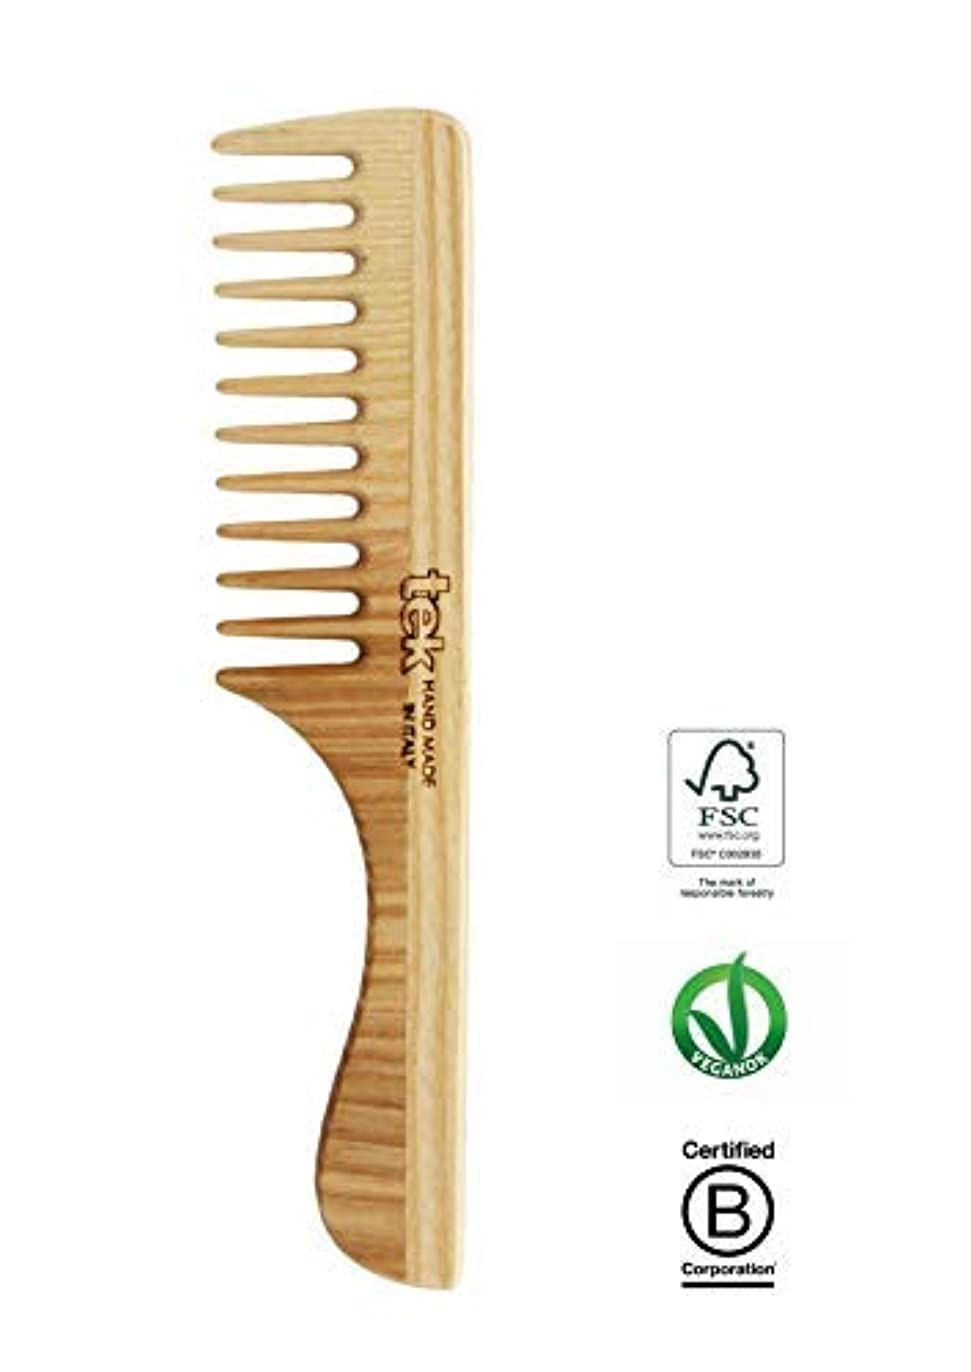 リッチ慣習自分を引き上げるTek hair comb in ash wood with wide teeth and handle - Handmade in Italy [並行輸入品]